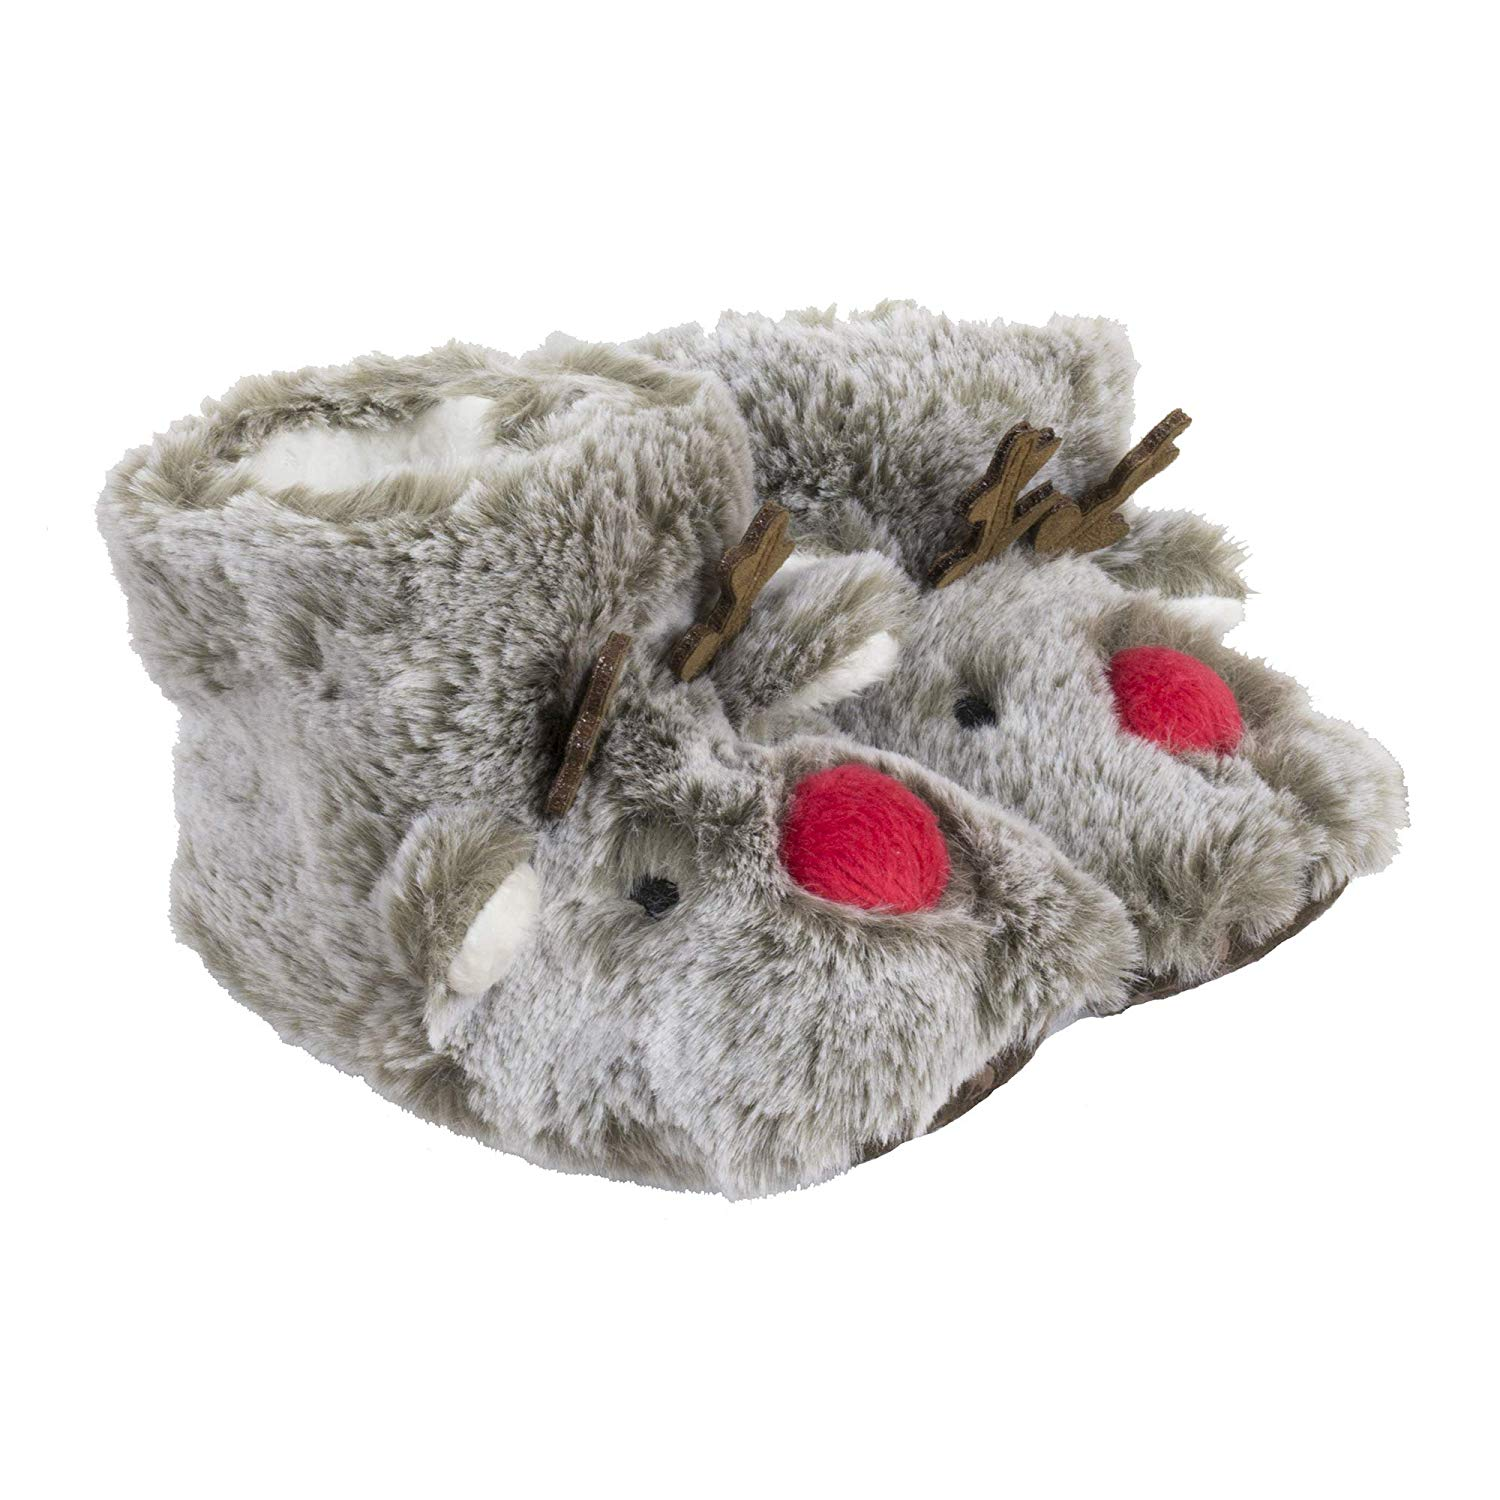 cfce91df298e Get Quotations · Joules Baby Christmas Character Slippers - Rudolf